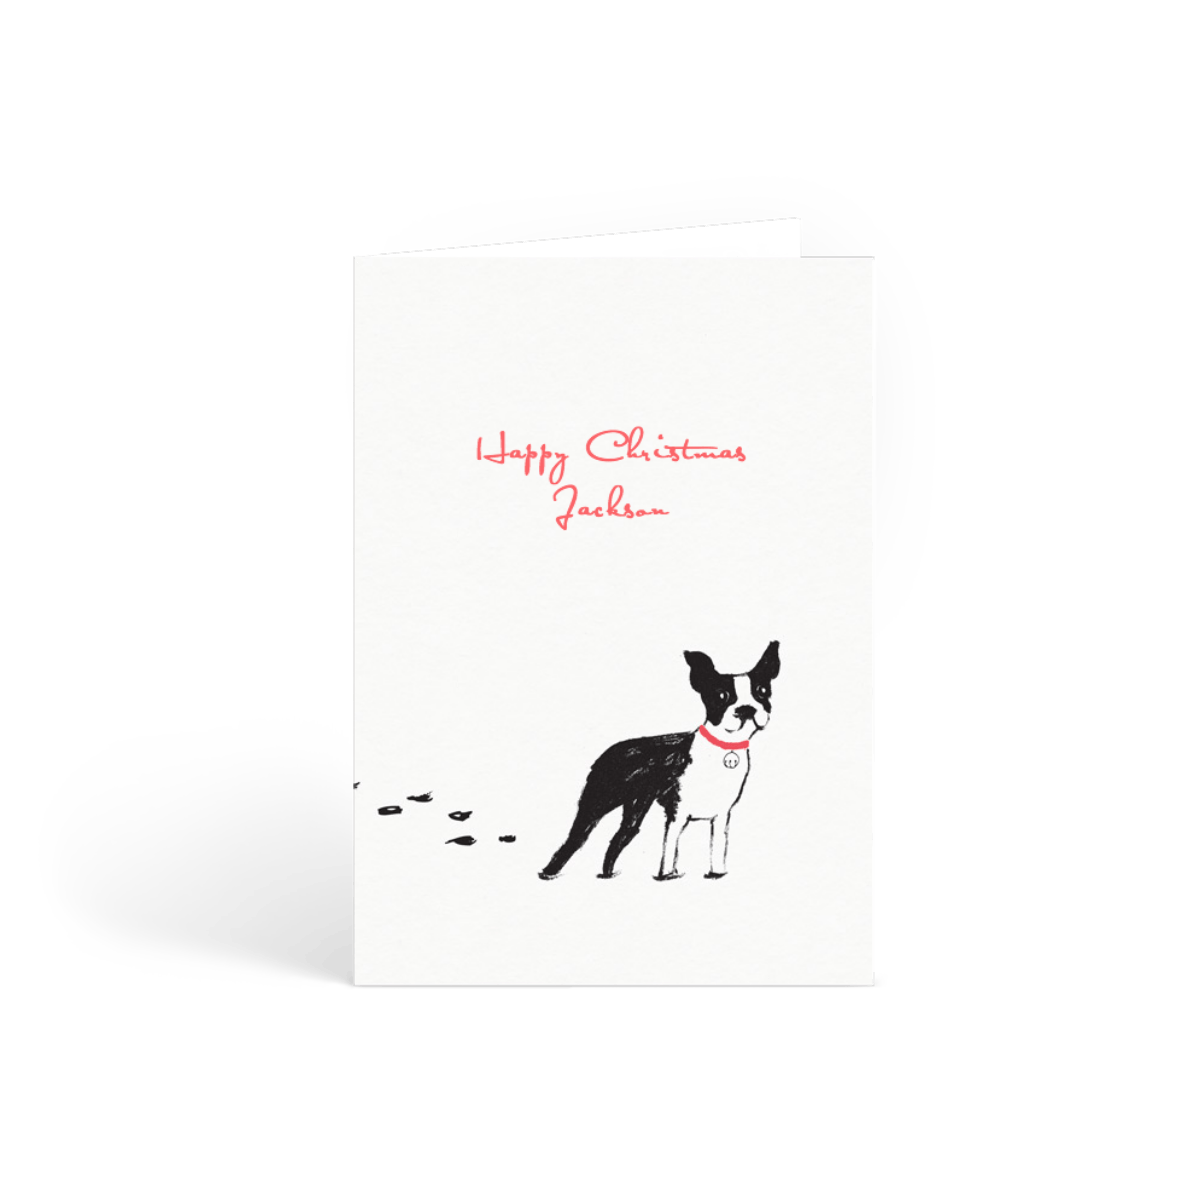 Https%3a%2f%2fwww.papier.com%2fproduct image%2f3513%2f2%2fchristmas pup 939 front 1570704679.png?ixlib=rb 1.1